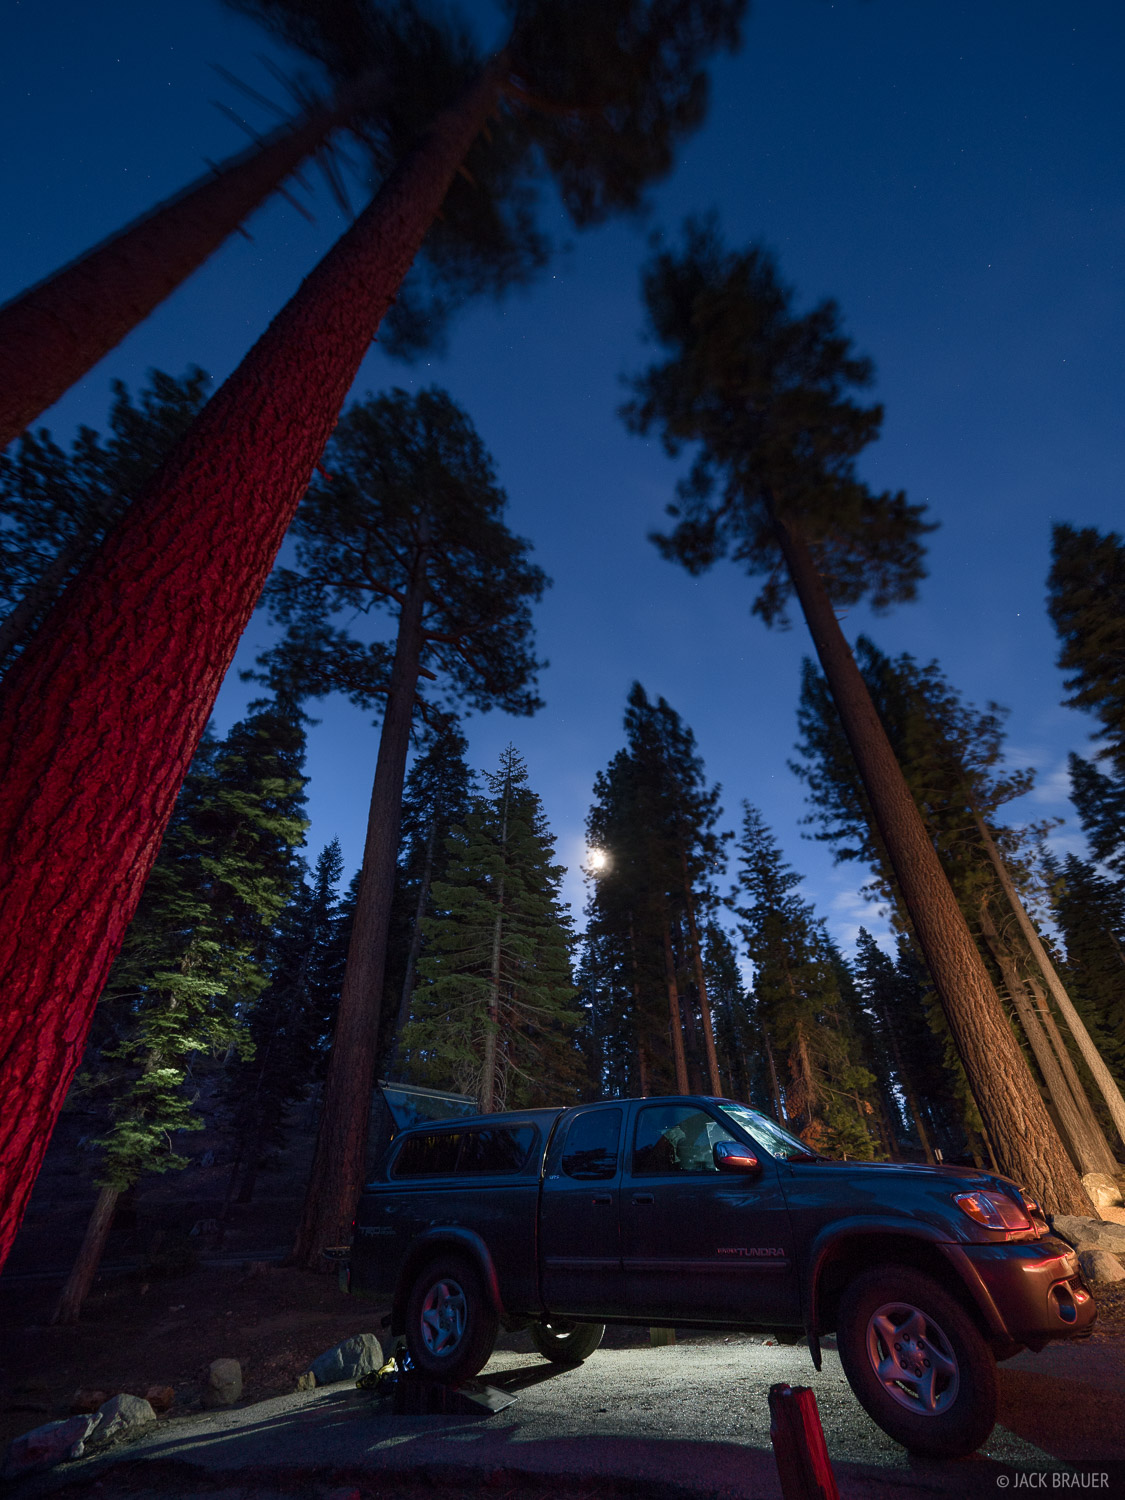 A windy night at the Bayview Campground along the south shore of Lake Tahoe, California. The big pines were swaying so much in...